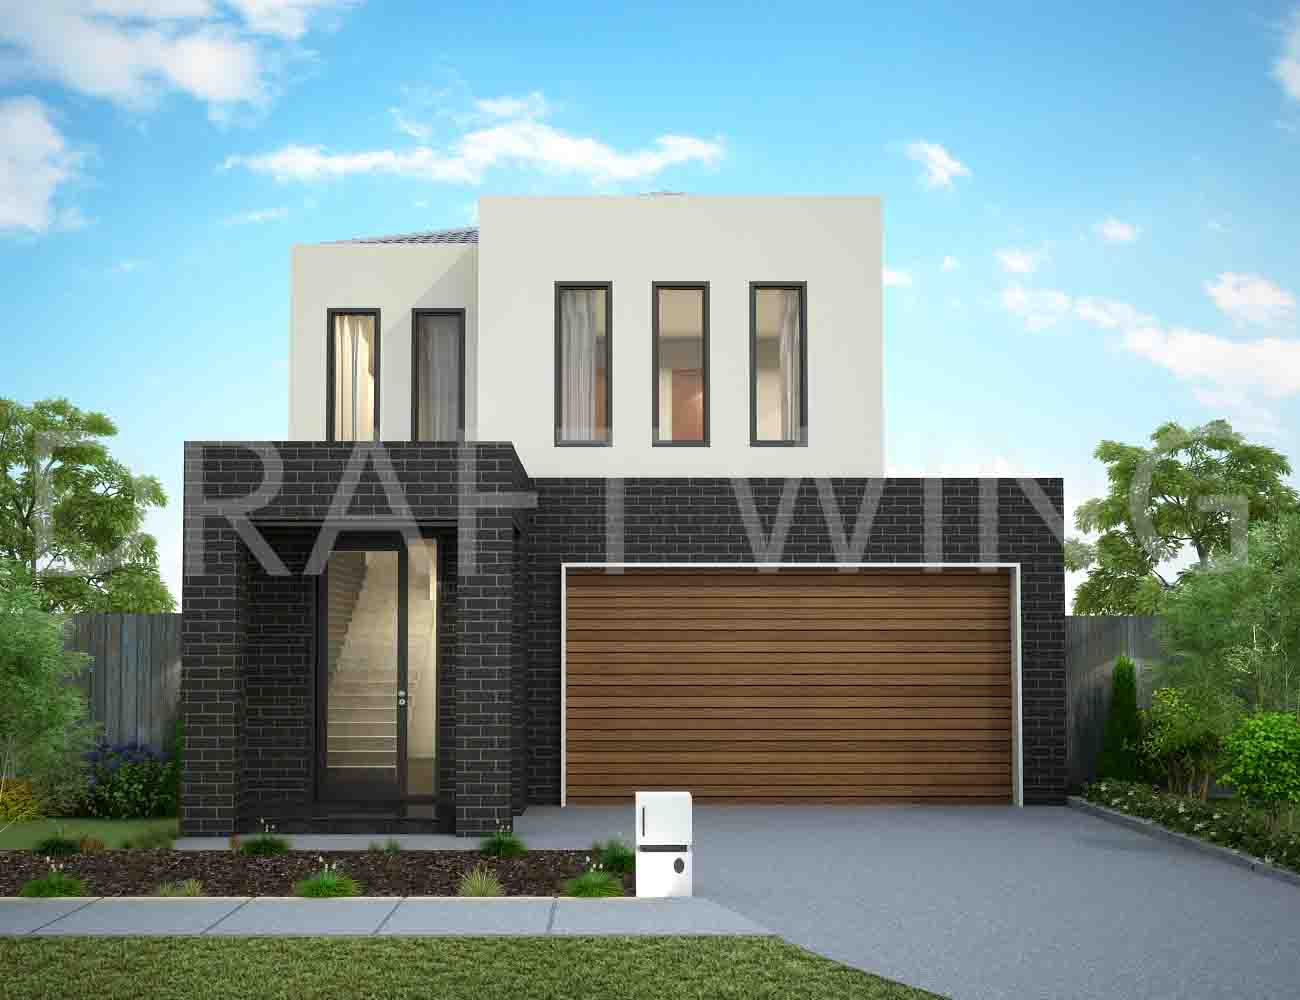 oResidential architectural designs